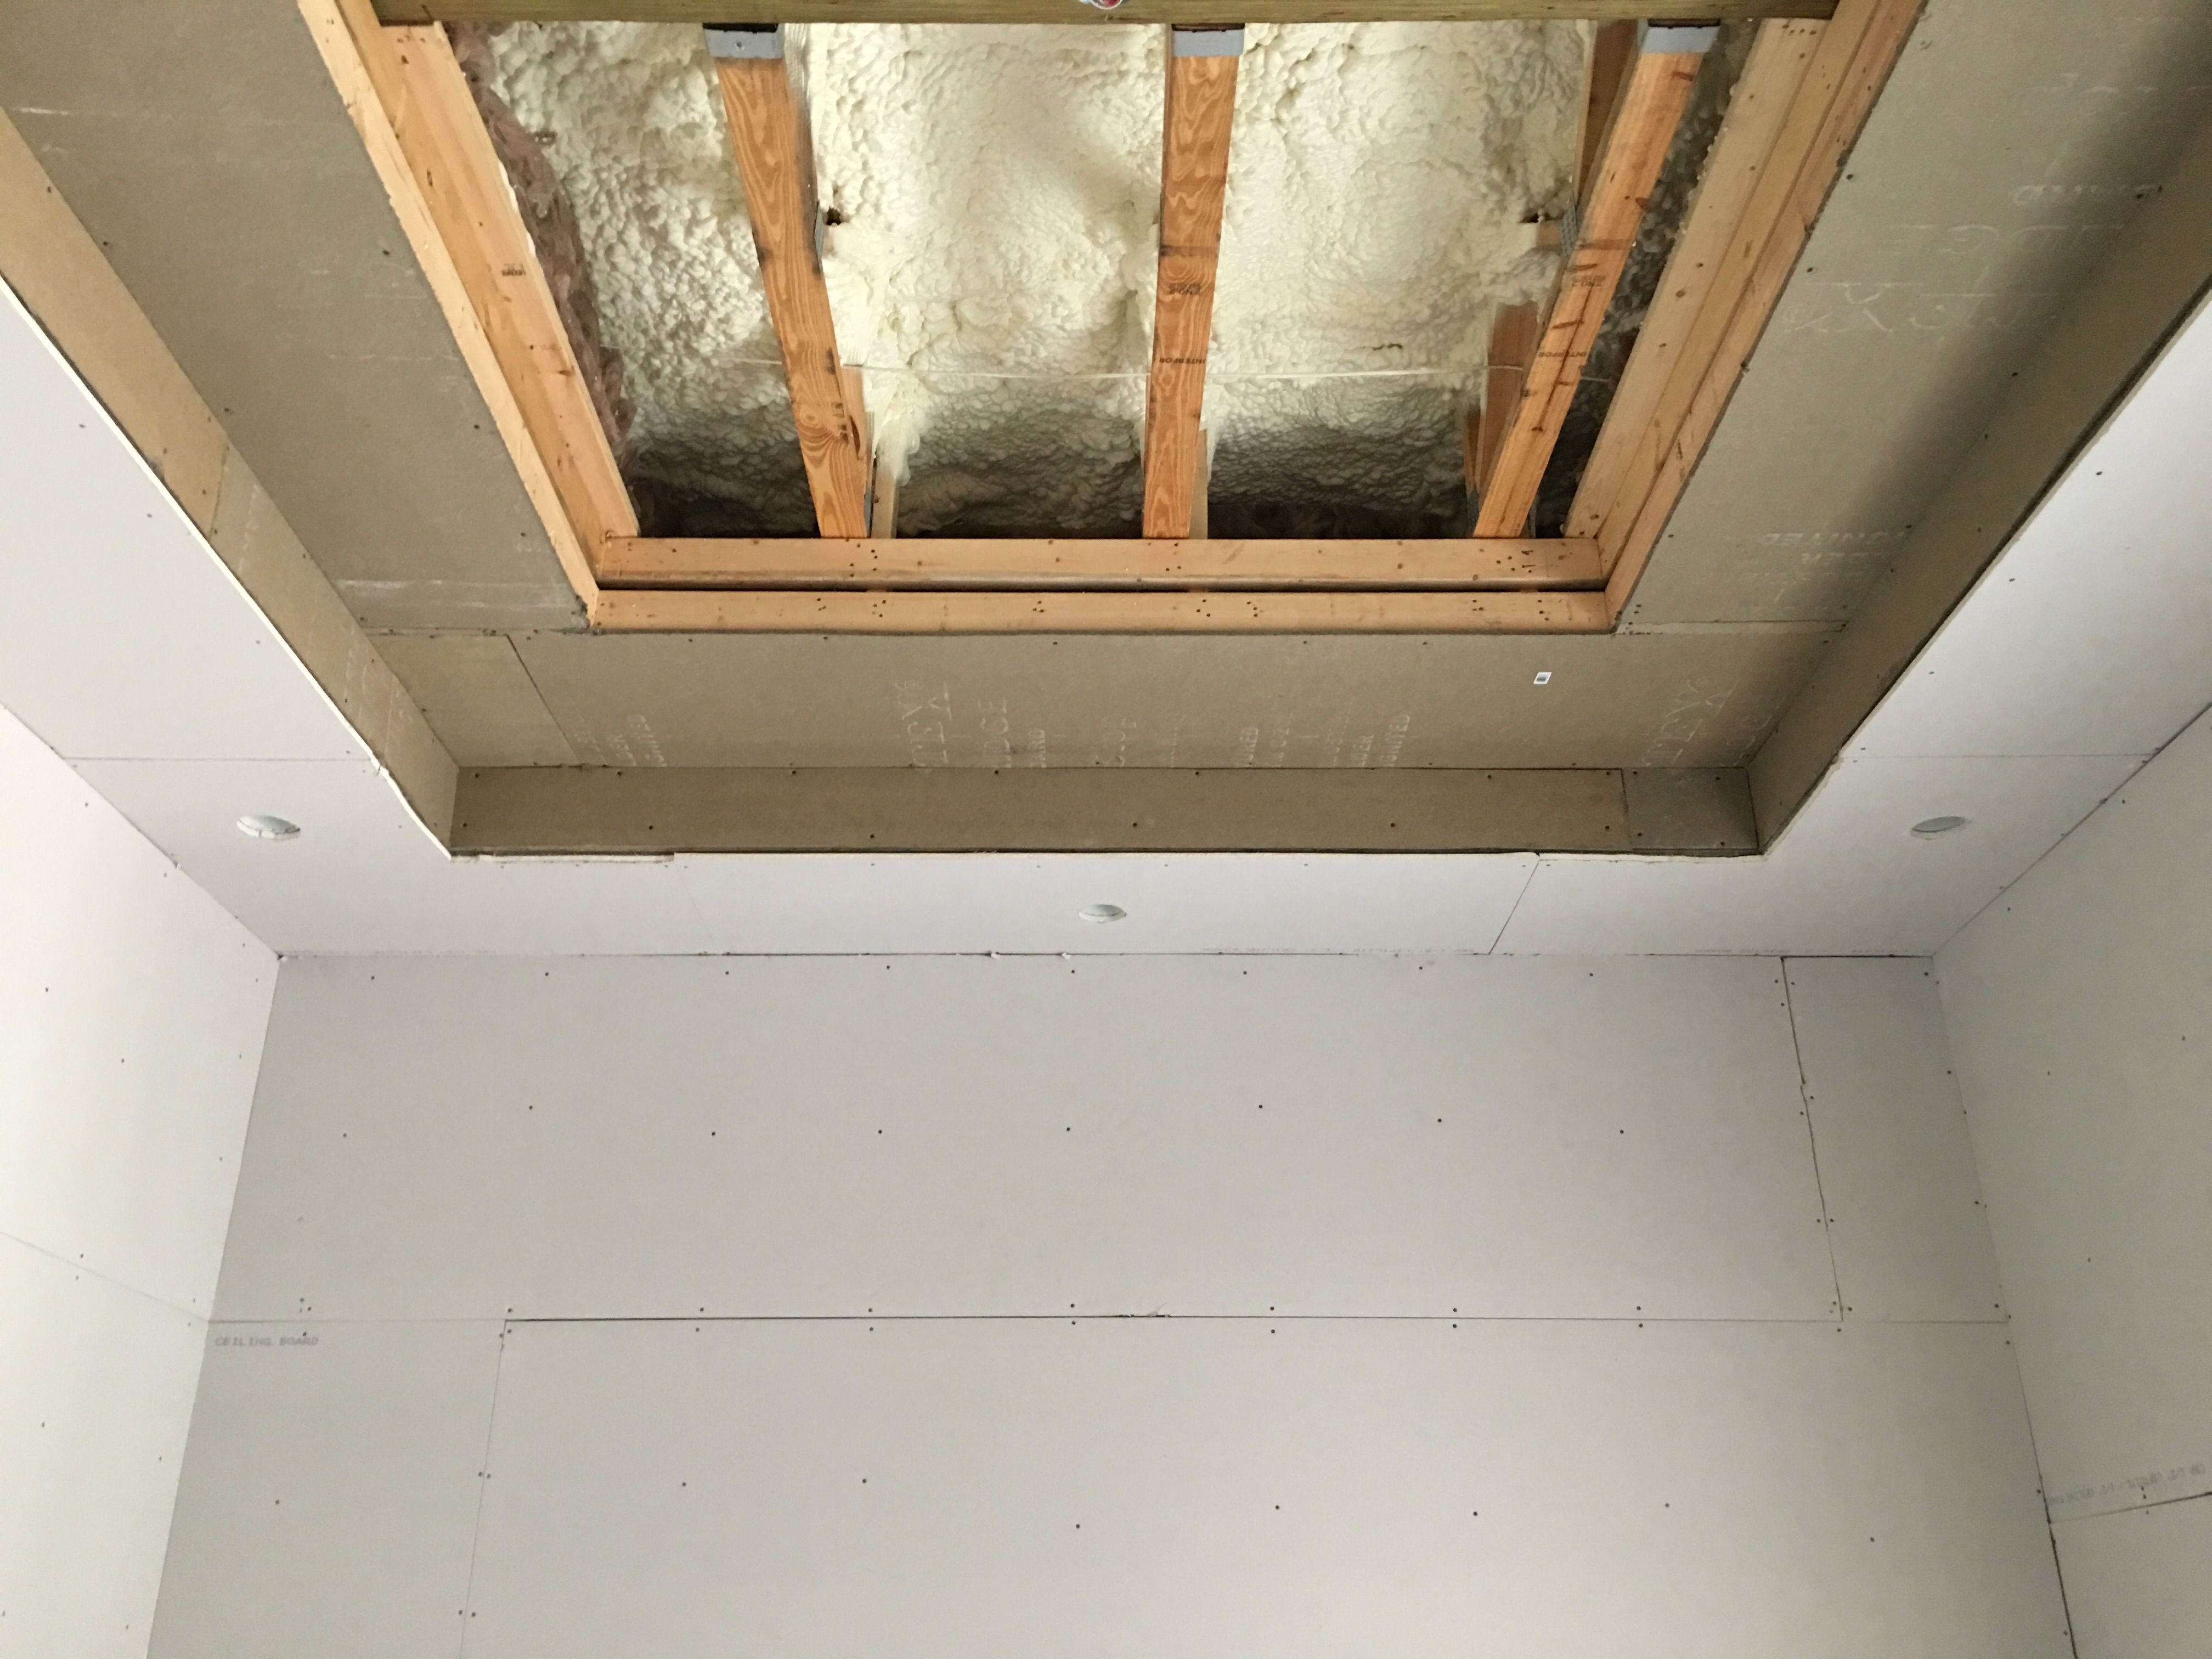 We Insulate Our Cinema Rooms With Spray Foam Insulation At Walls Ceilings Follow With Installing Sound Proof Cinema Room Custom Homes Spray Foam Insulation